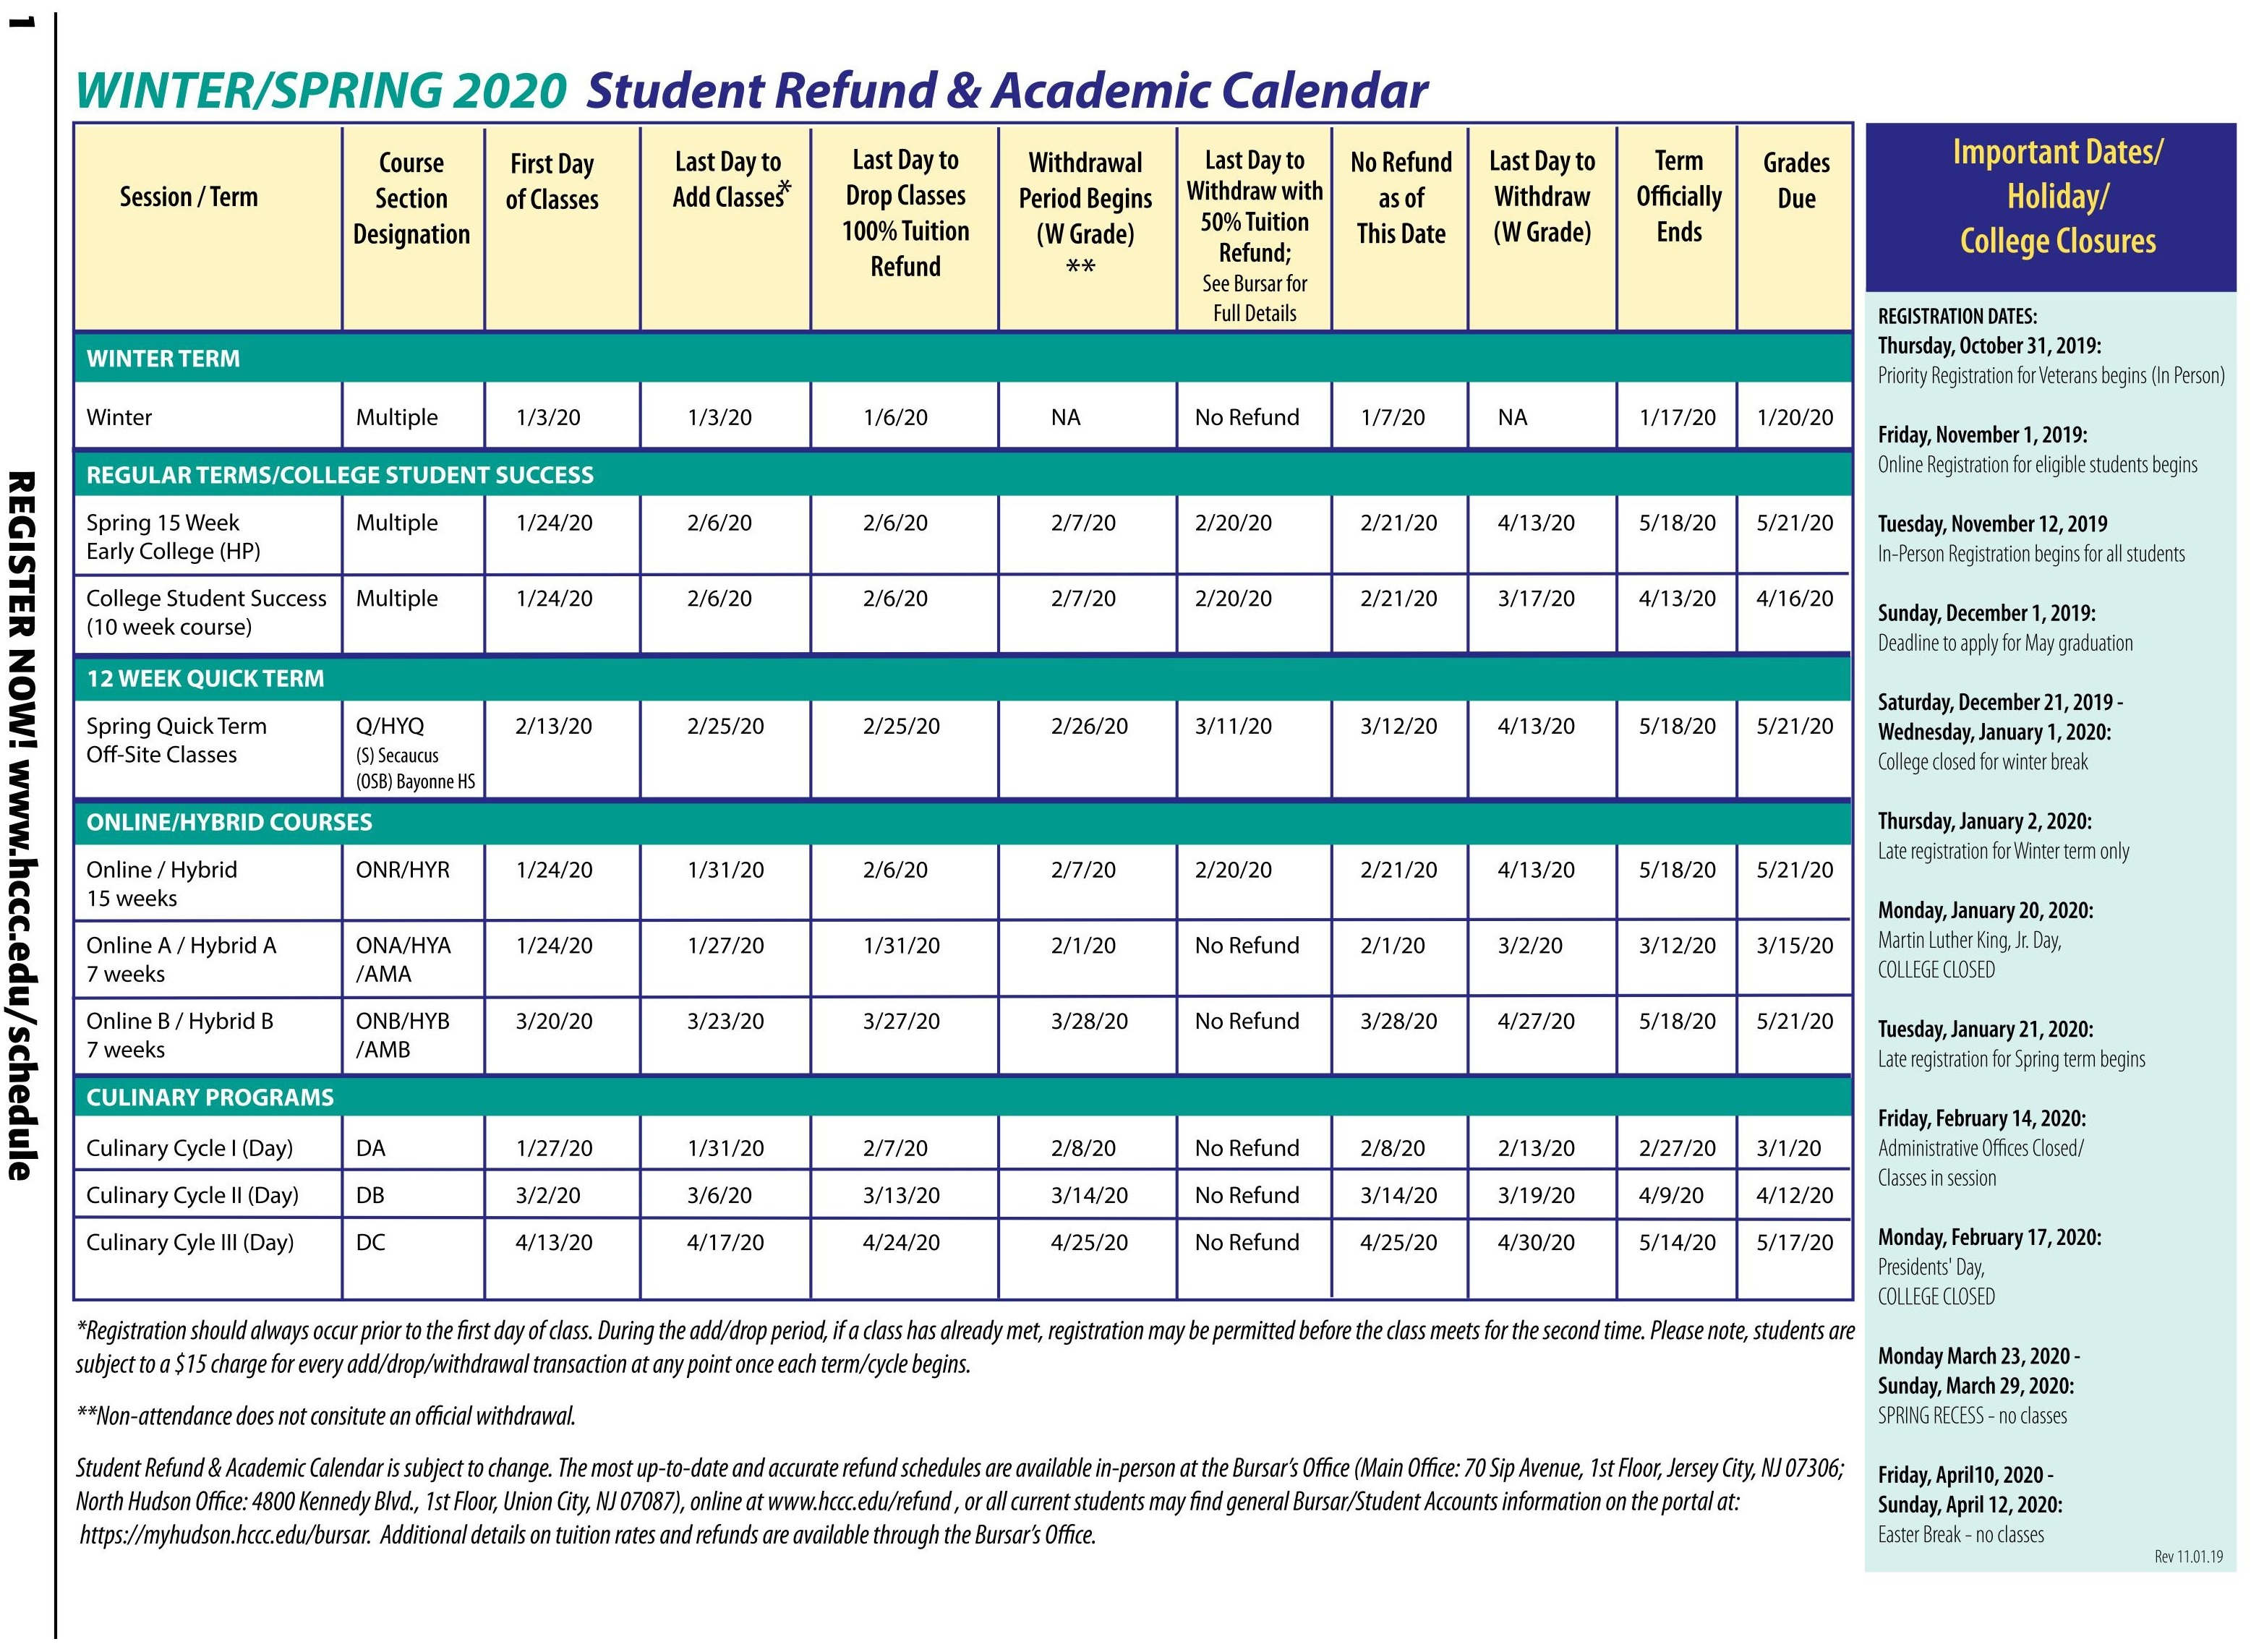 Hudson County Community College regarding Nassau Community College Spring 2020 Calendar